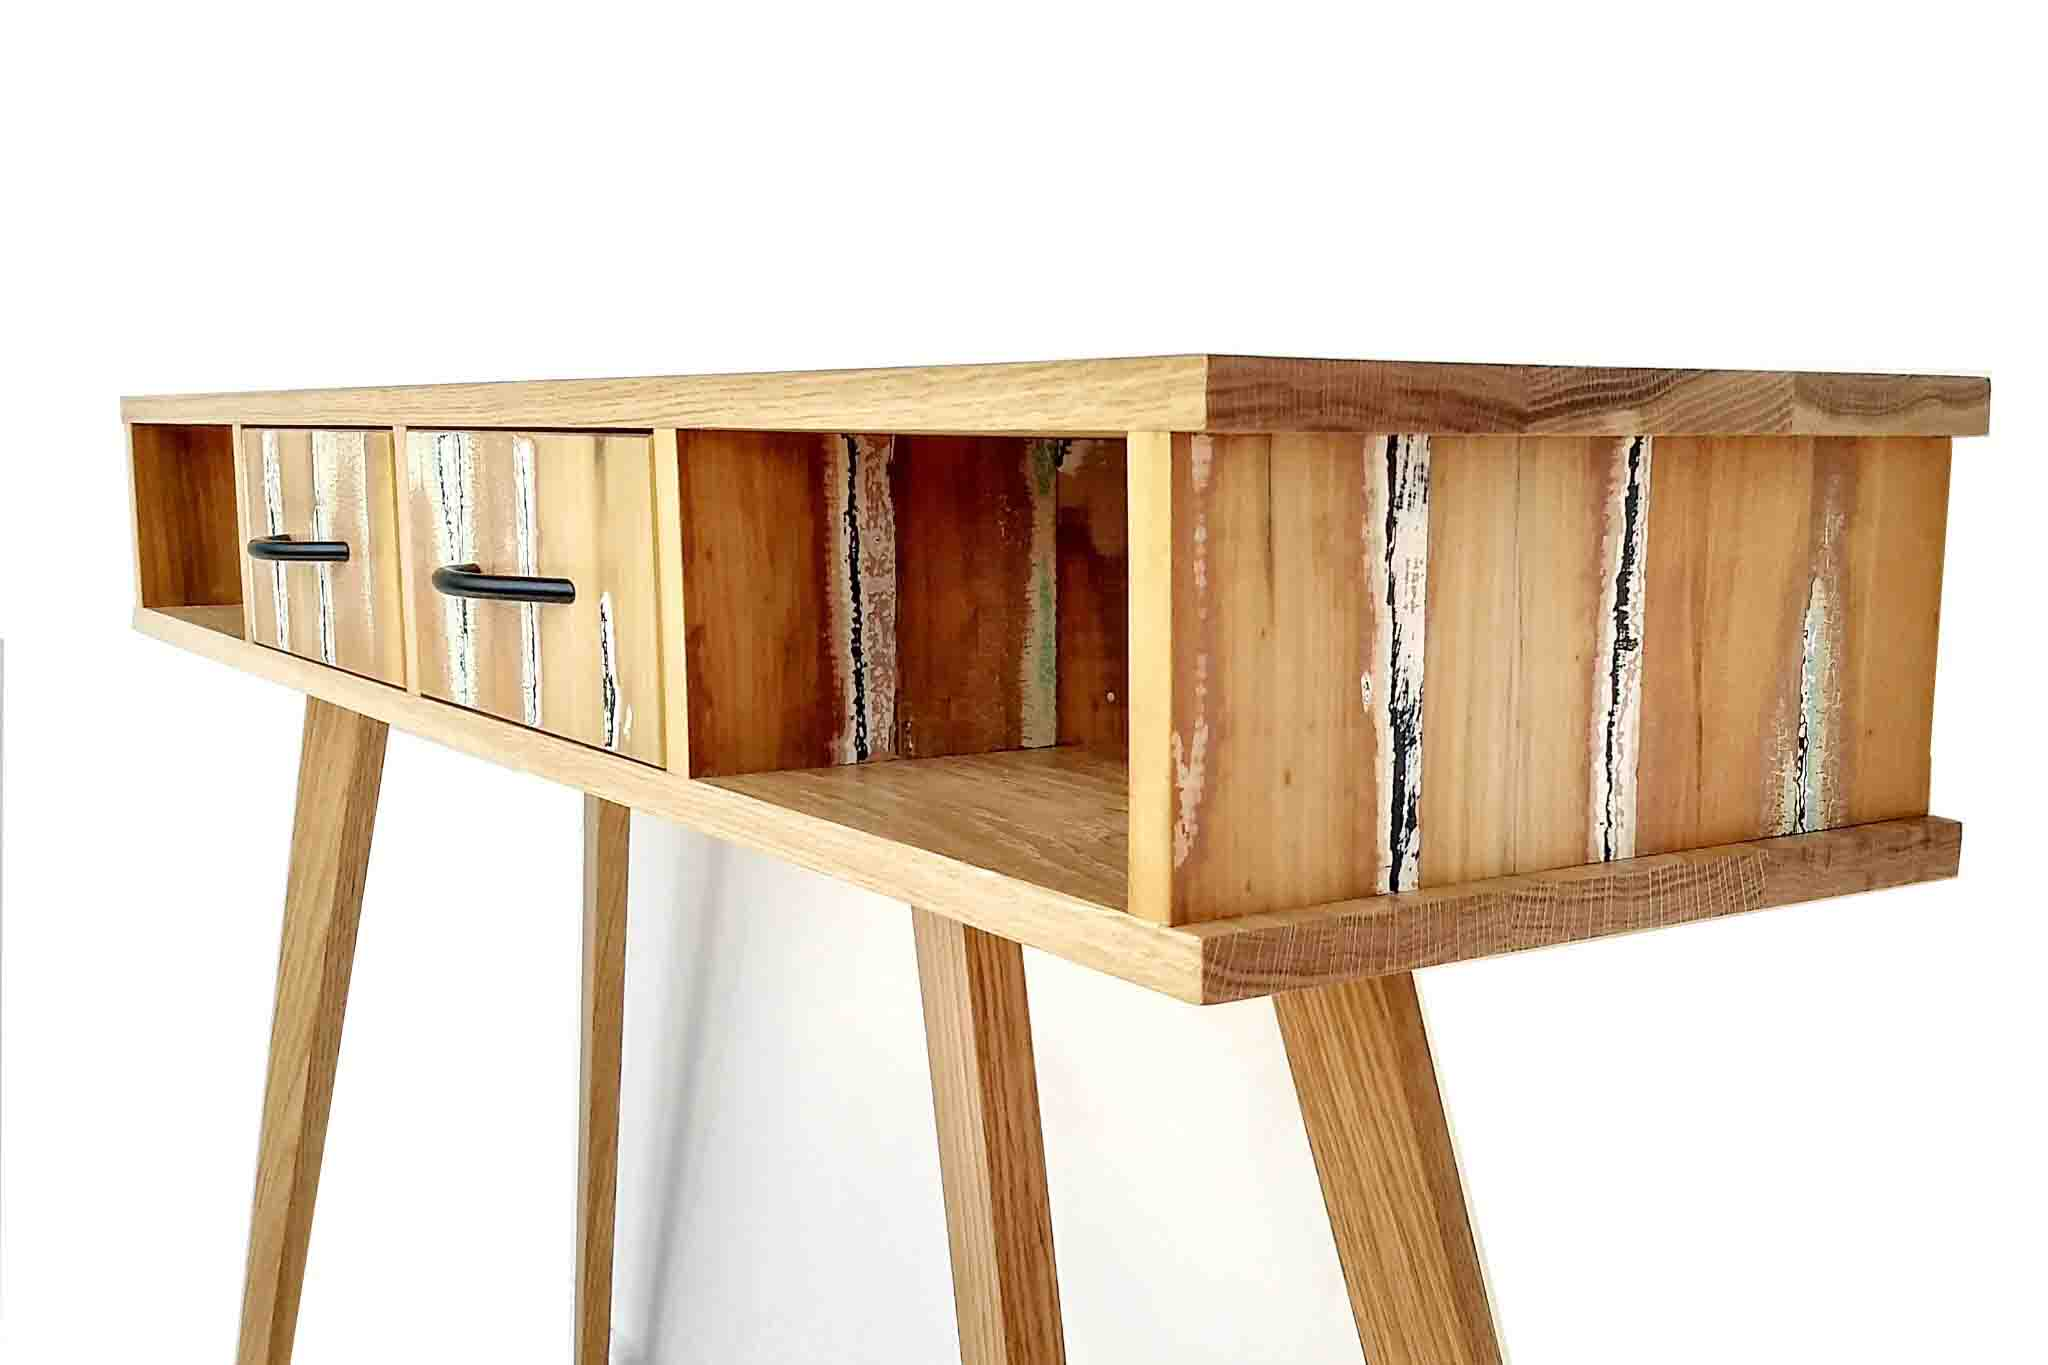 Reclaimed timber hall console custom made from recycled timber by One Tree Studio.